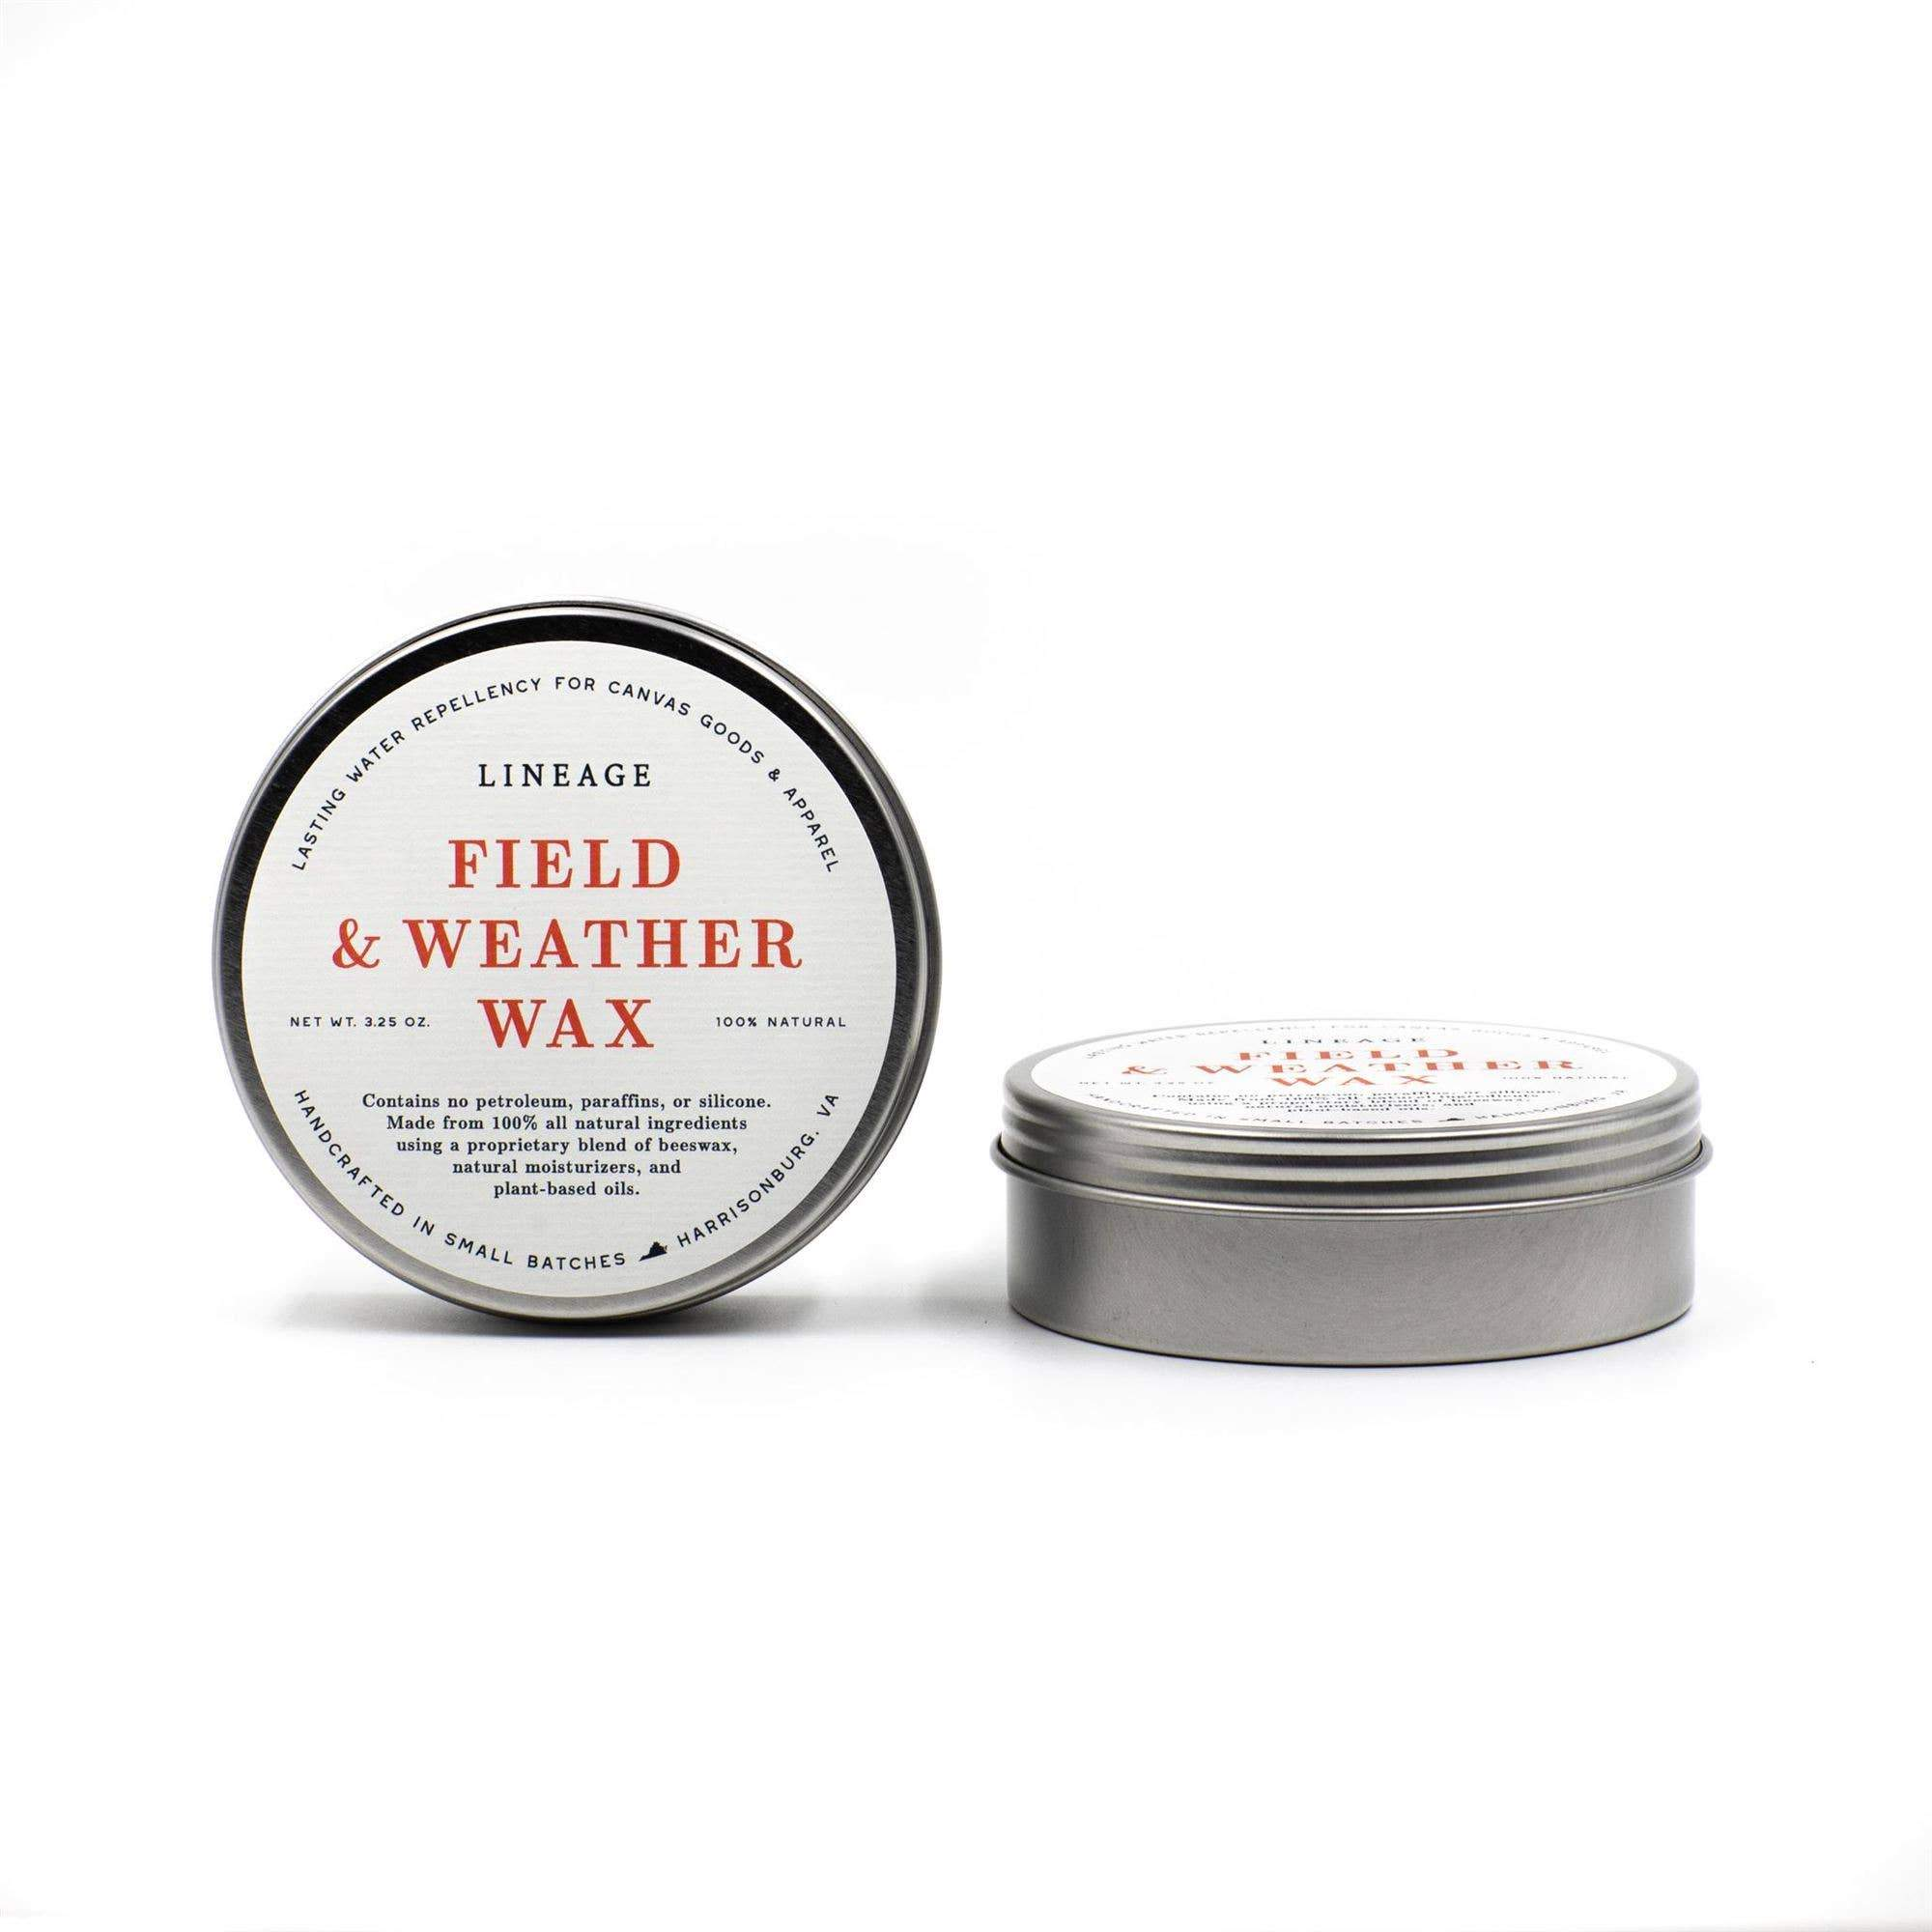 Field & Weather Wax-Lineage-MILWORKS